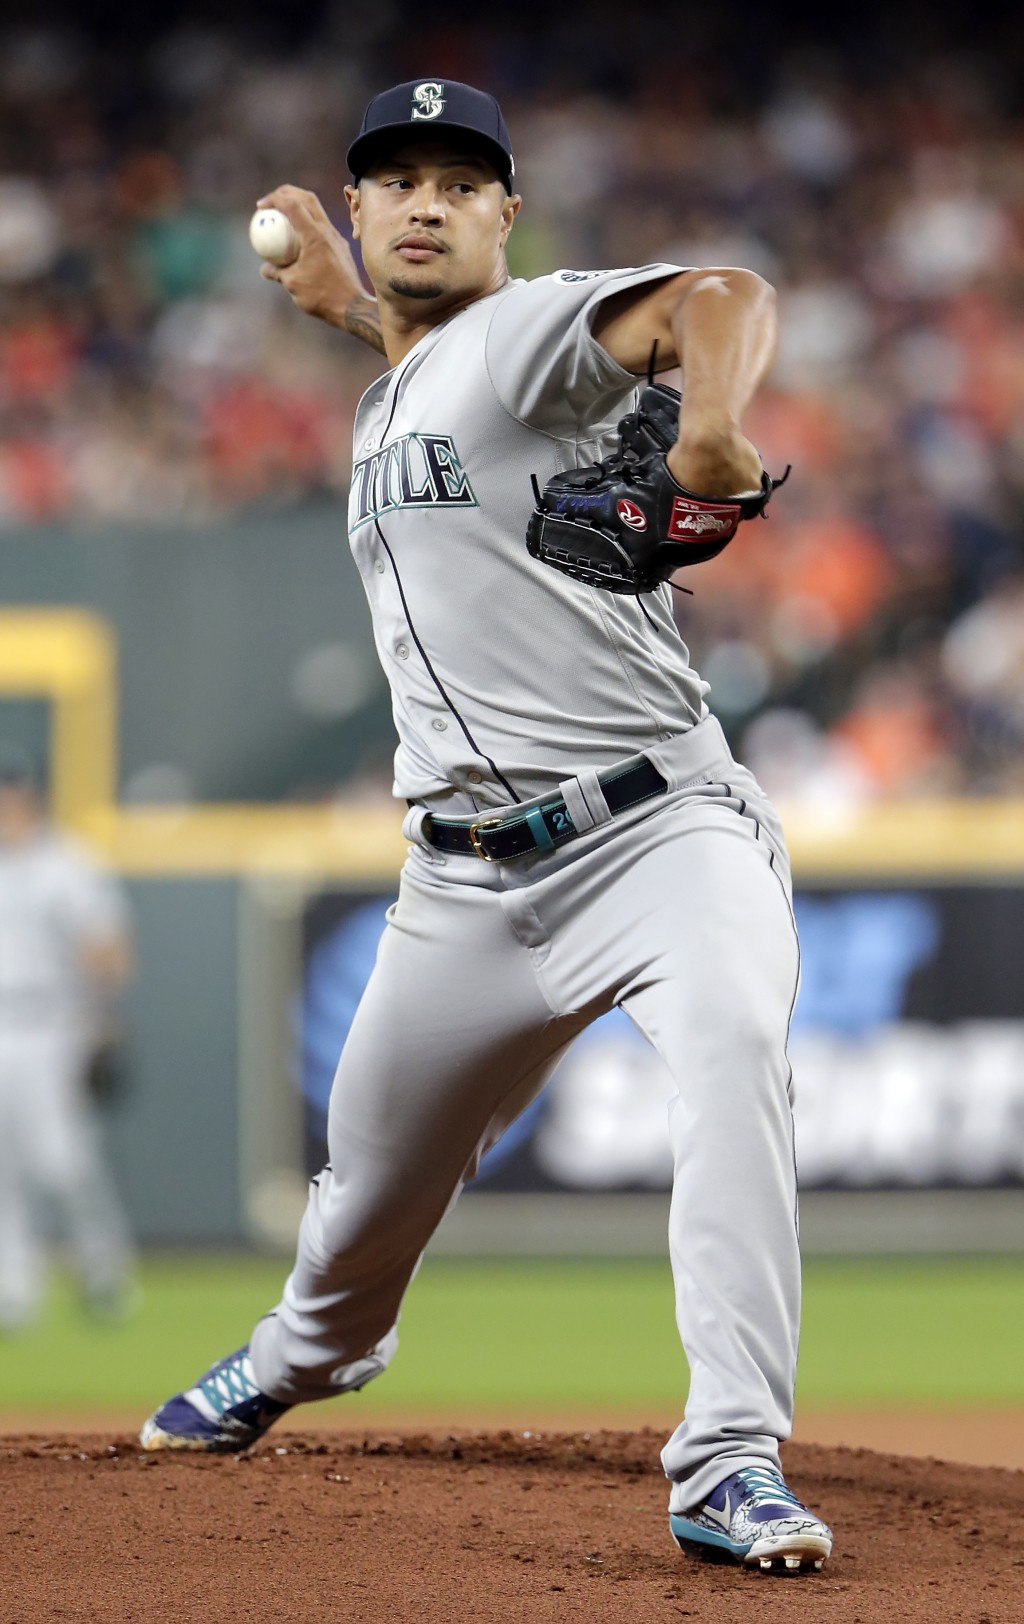 Seattle Mariners starting pitcher Sam Tuivailala throws during the first inning of a baseball game against the Houston Astros, Sunday, Aug. 4, 2019, i